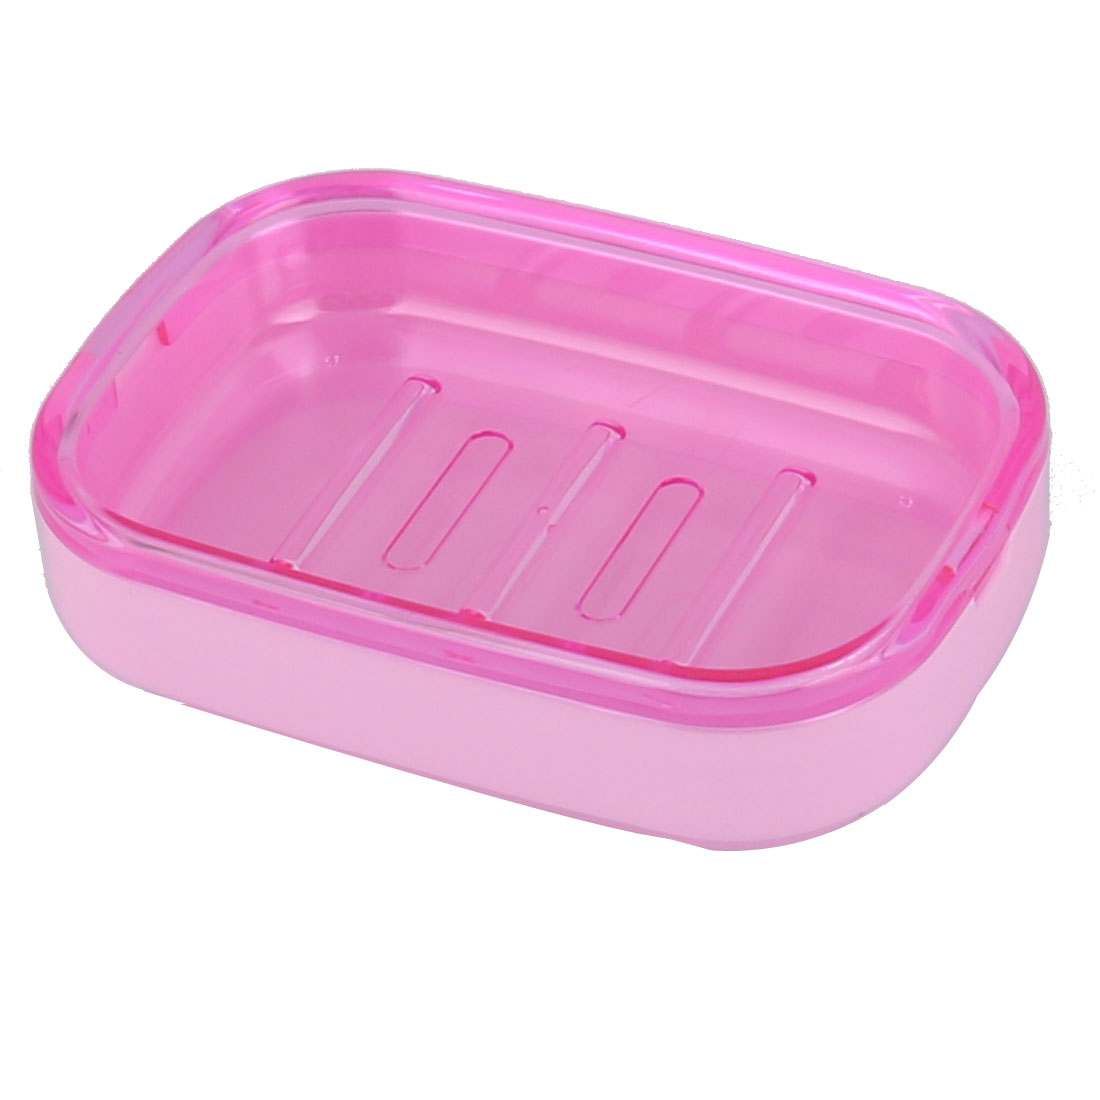 Hotel Household Bathroom Wave Base PP 2 Layers Soap Box Holder Case Container Pink